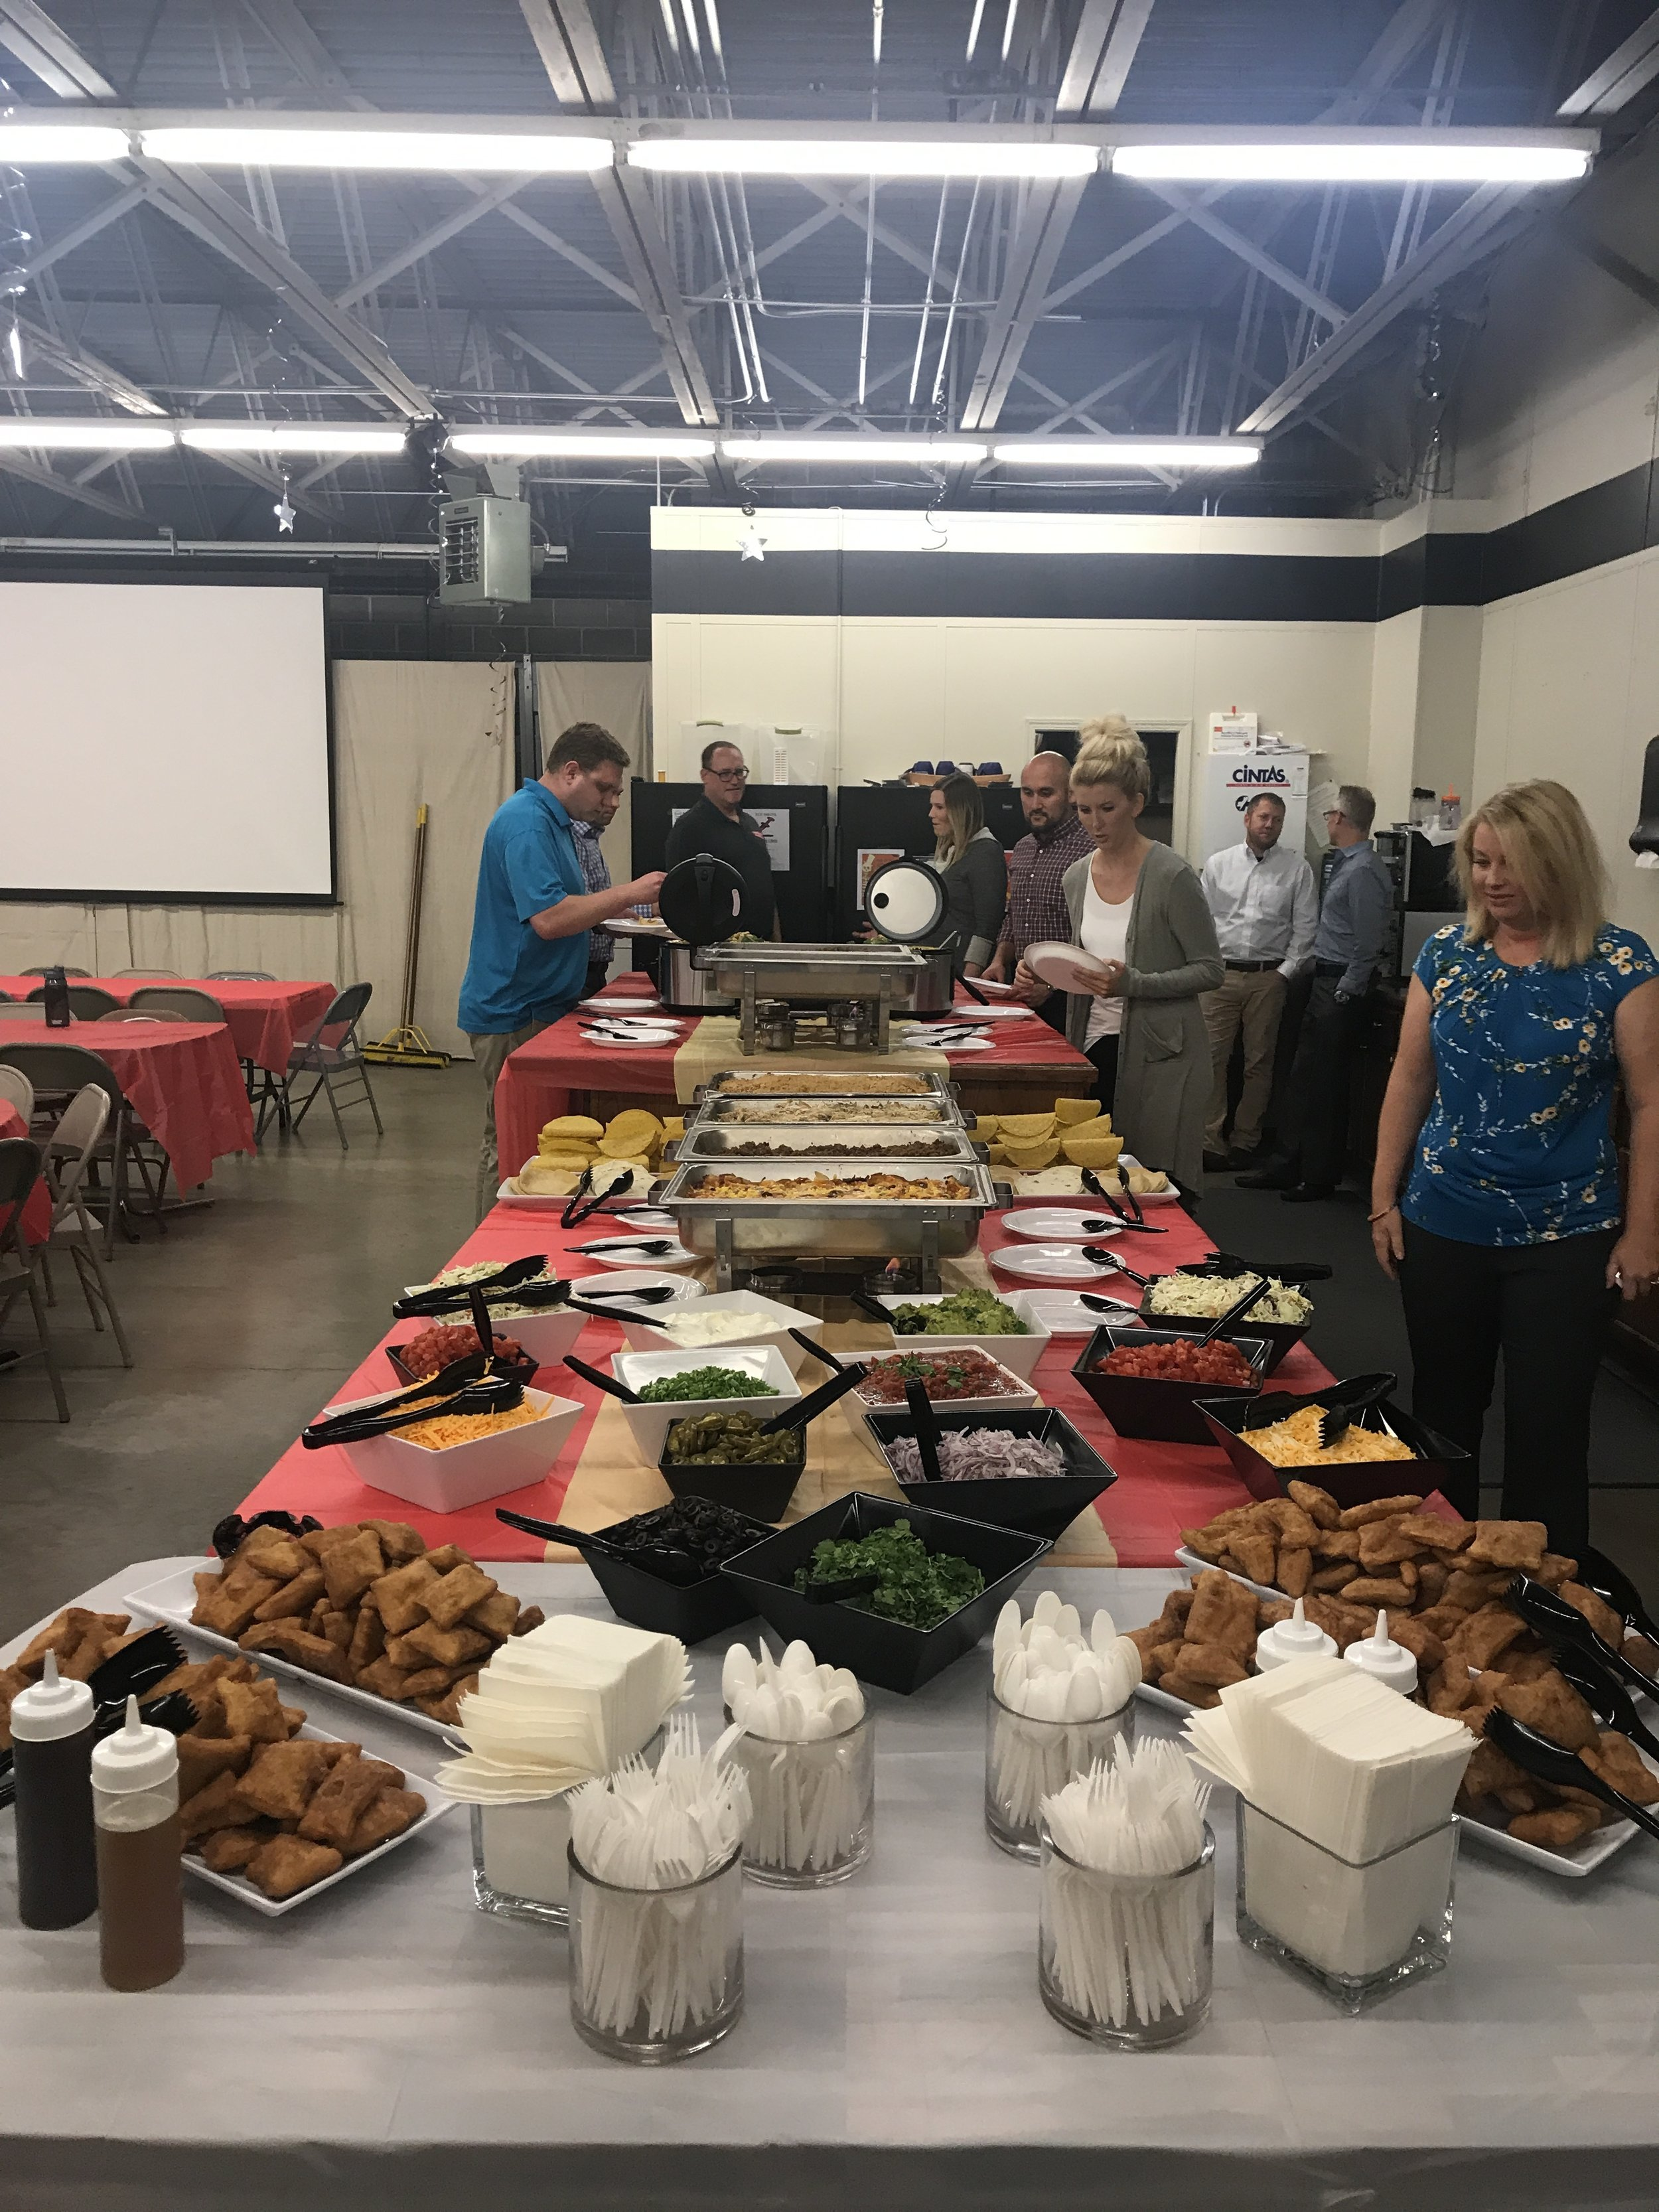 crossroads-downtown-kansas-city-river-market-westbottoms-catering-caterer-breakfast-delivered-corporate-events-training4.jpg